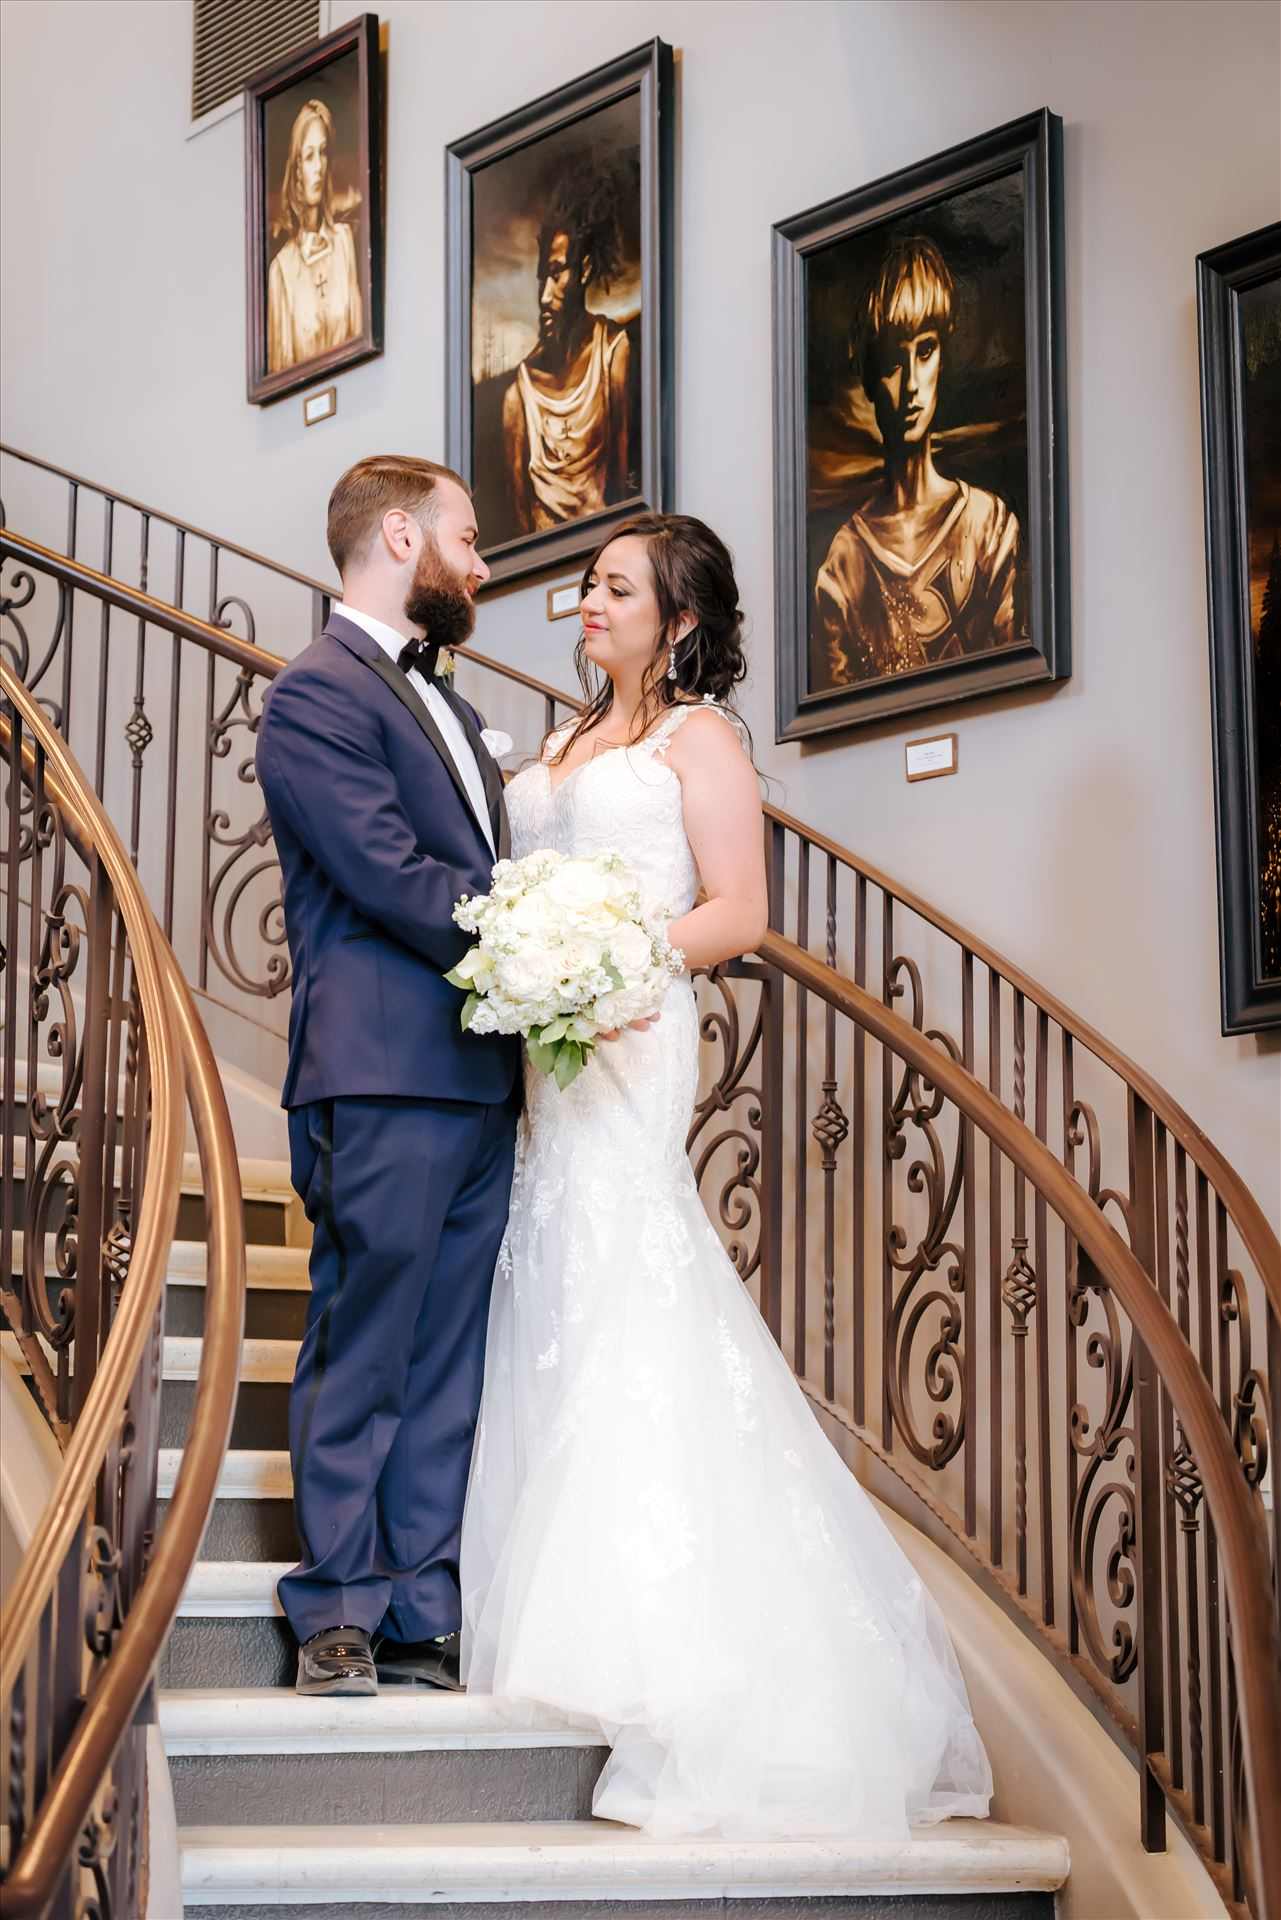 FW-1534.JPG - Tooth and Nail Winery elegant and formal wedding in Paso Robles California wine country by Mirror's Edge Photography, San Luis Obispo County Wedding Photographer.  Bride and Groom on Tooth and Nail Staircase. by Sarah Williams